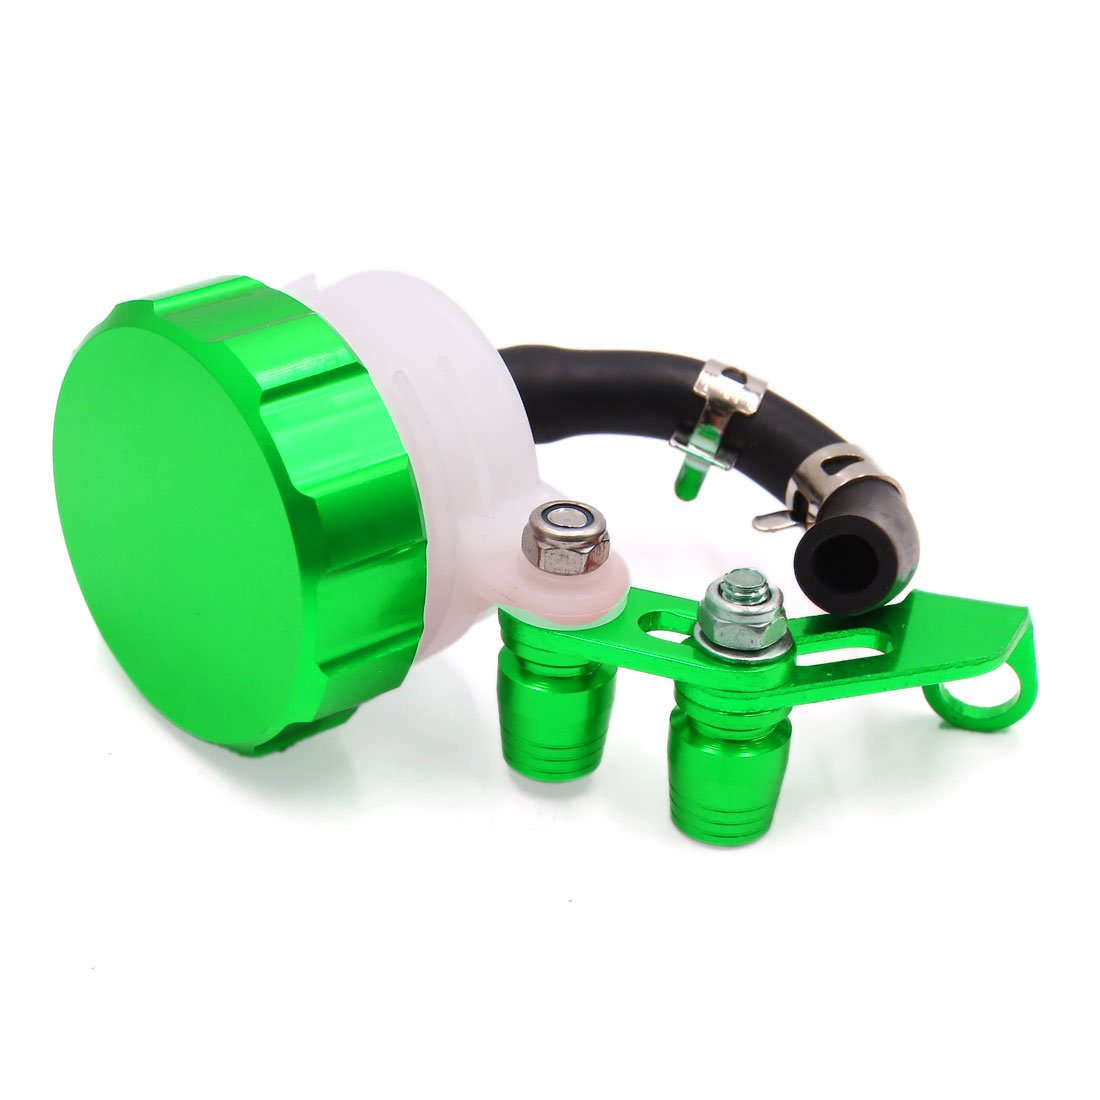 Uxcell a17070300ux1108 Green CNC Universal Motorcycle Front Brake Clutch Reservoir Tank Fluid Oil Cup